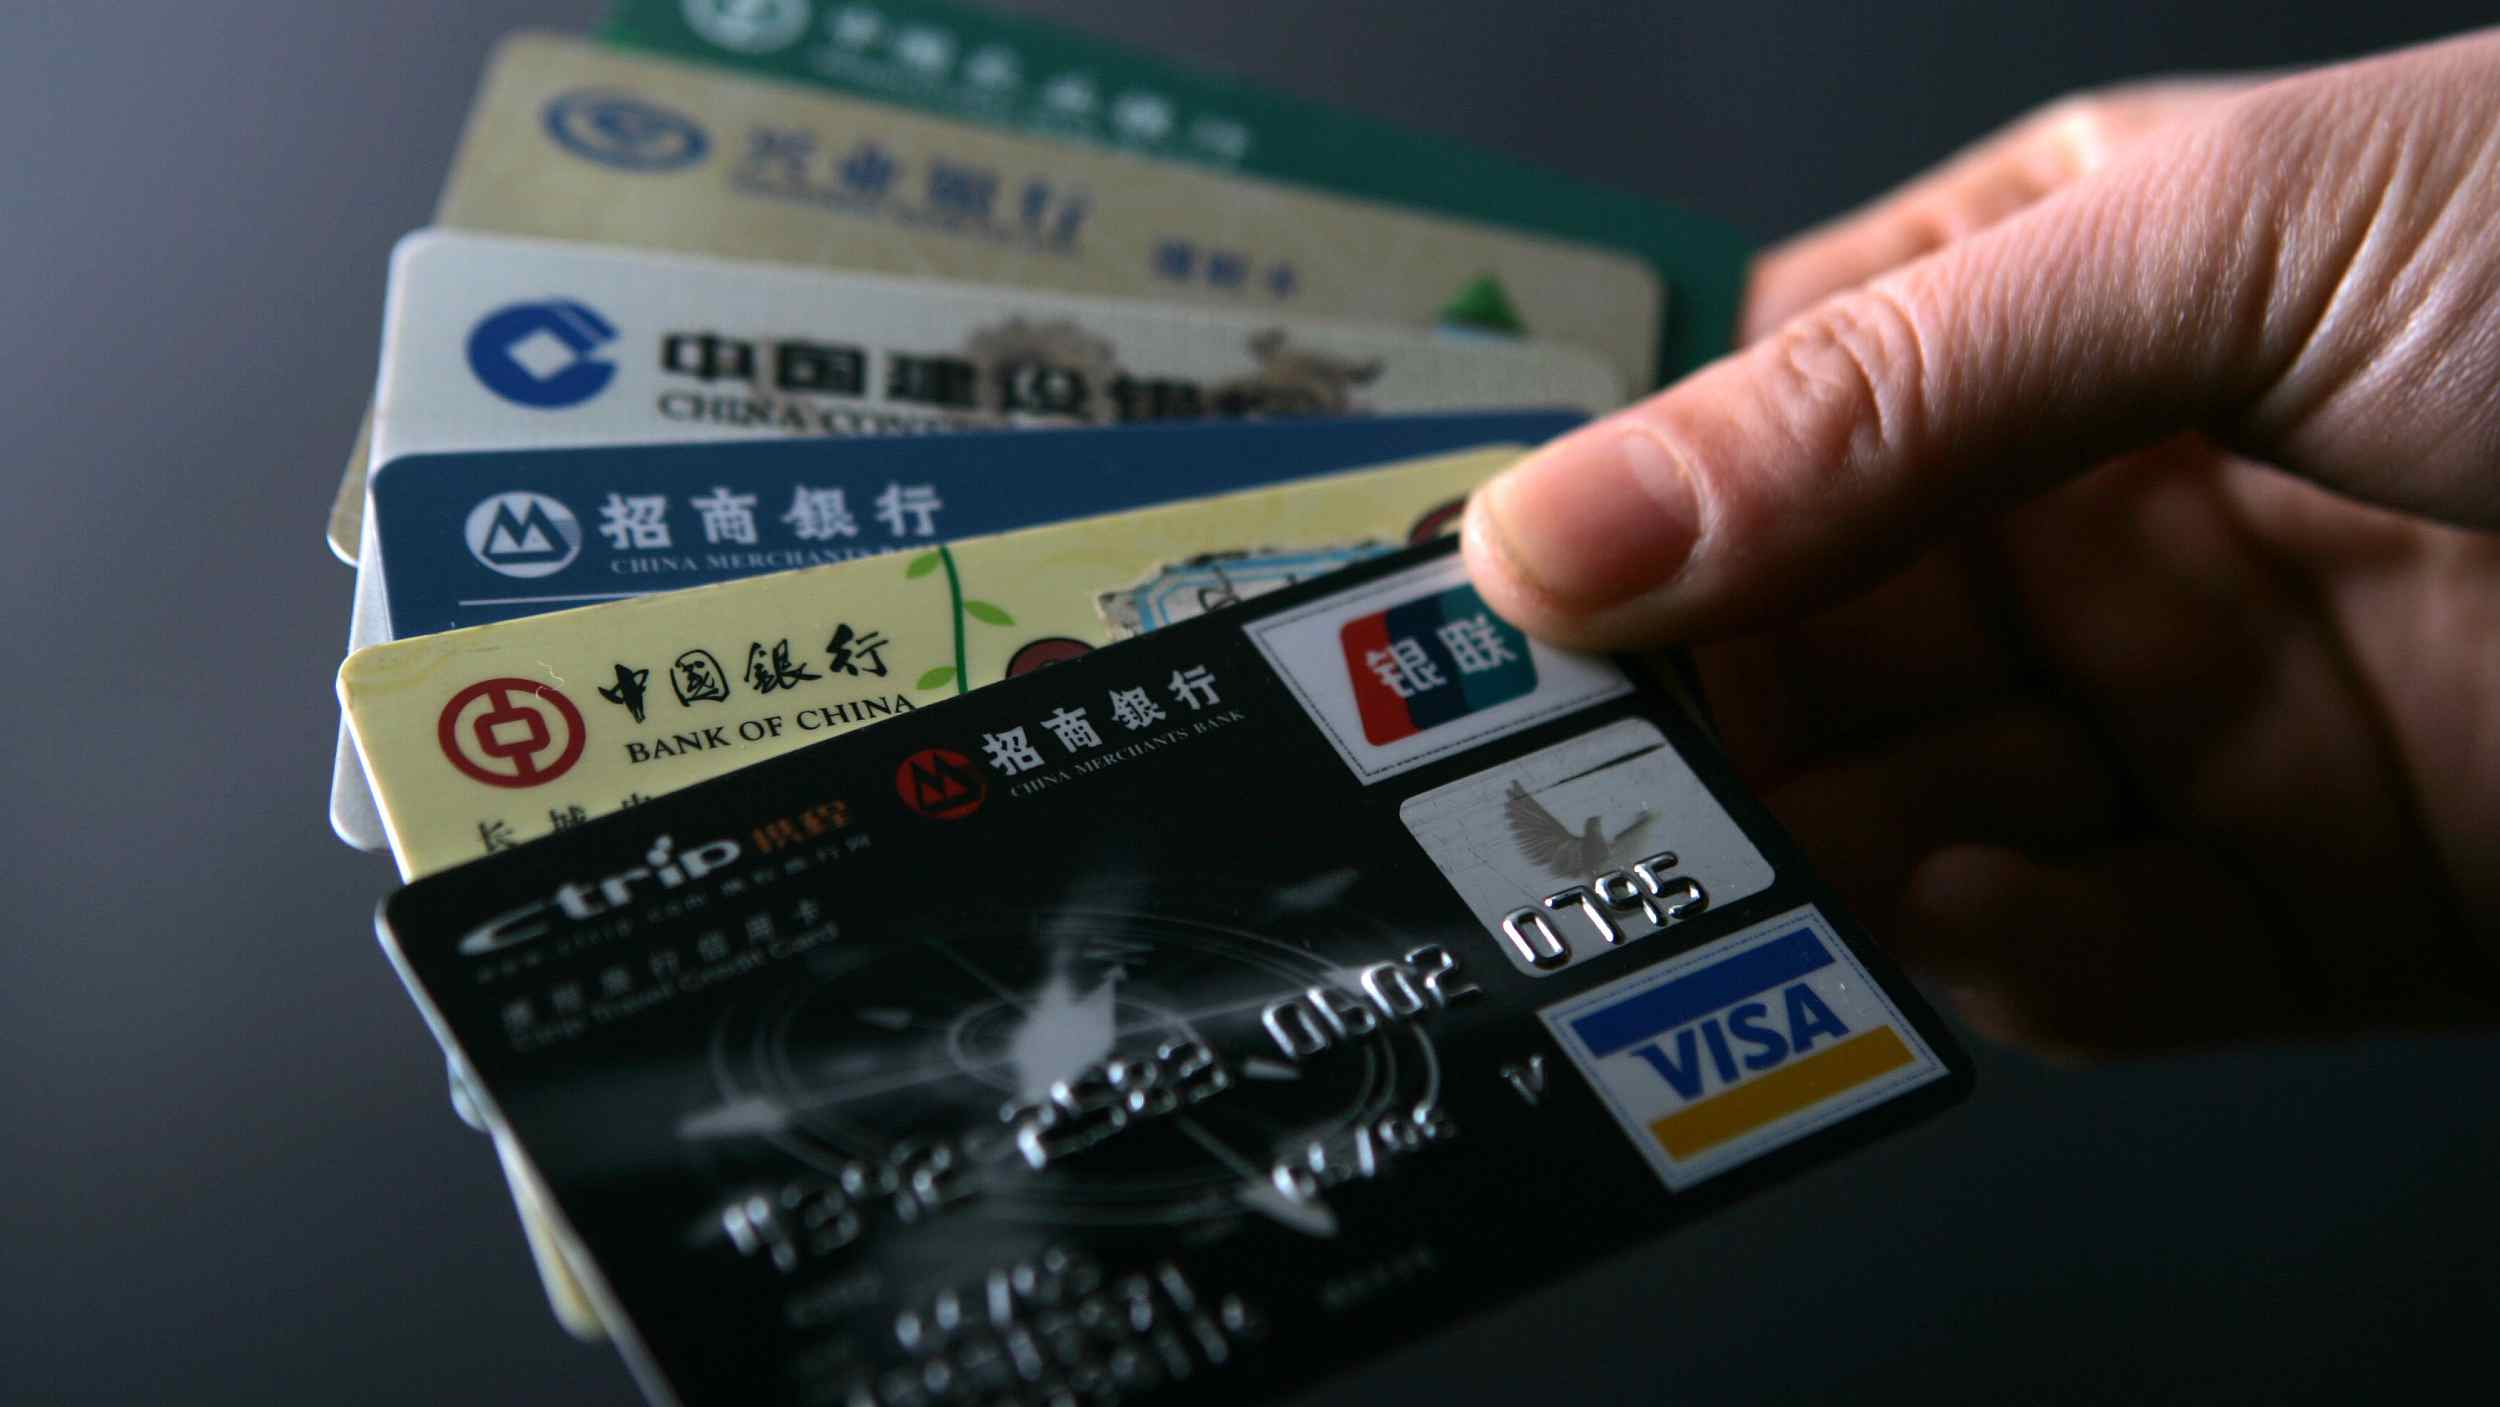 China has issued per capita five bank cards